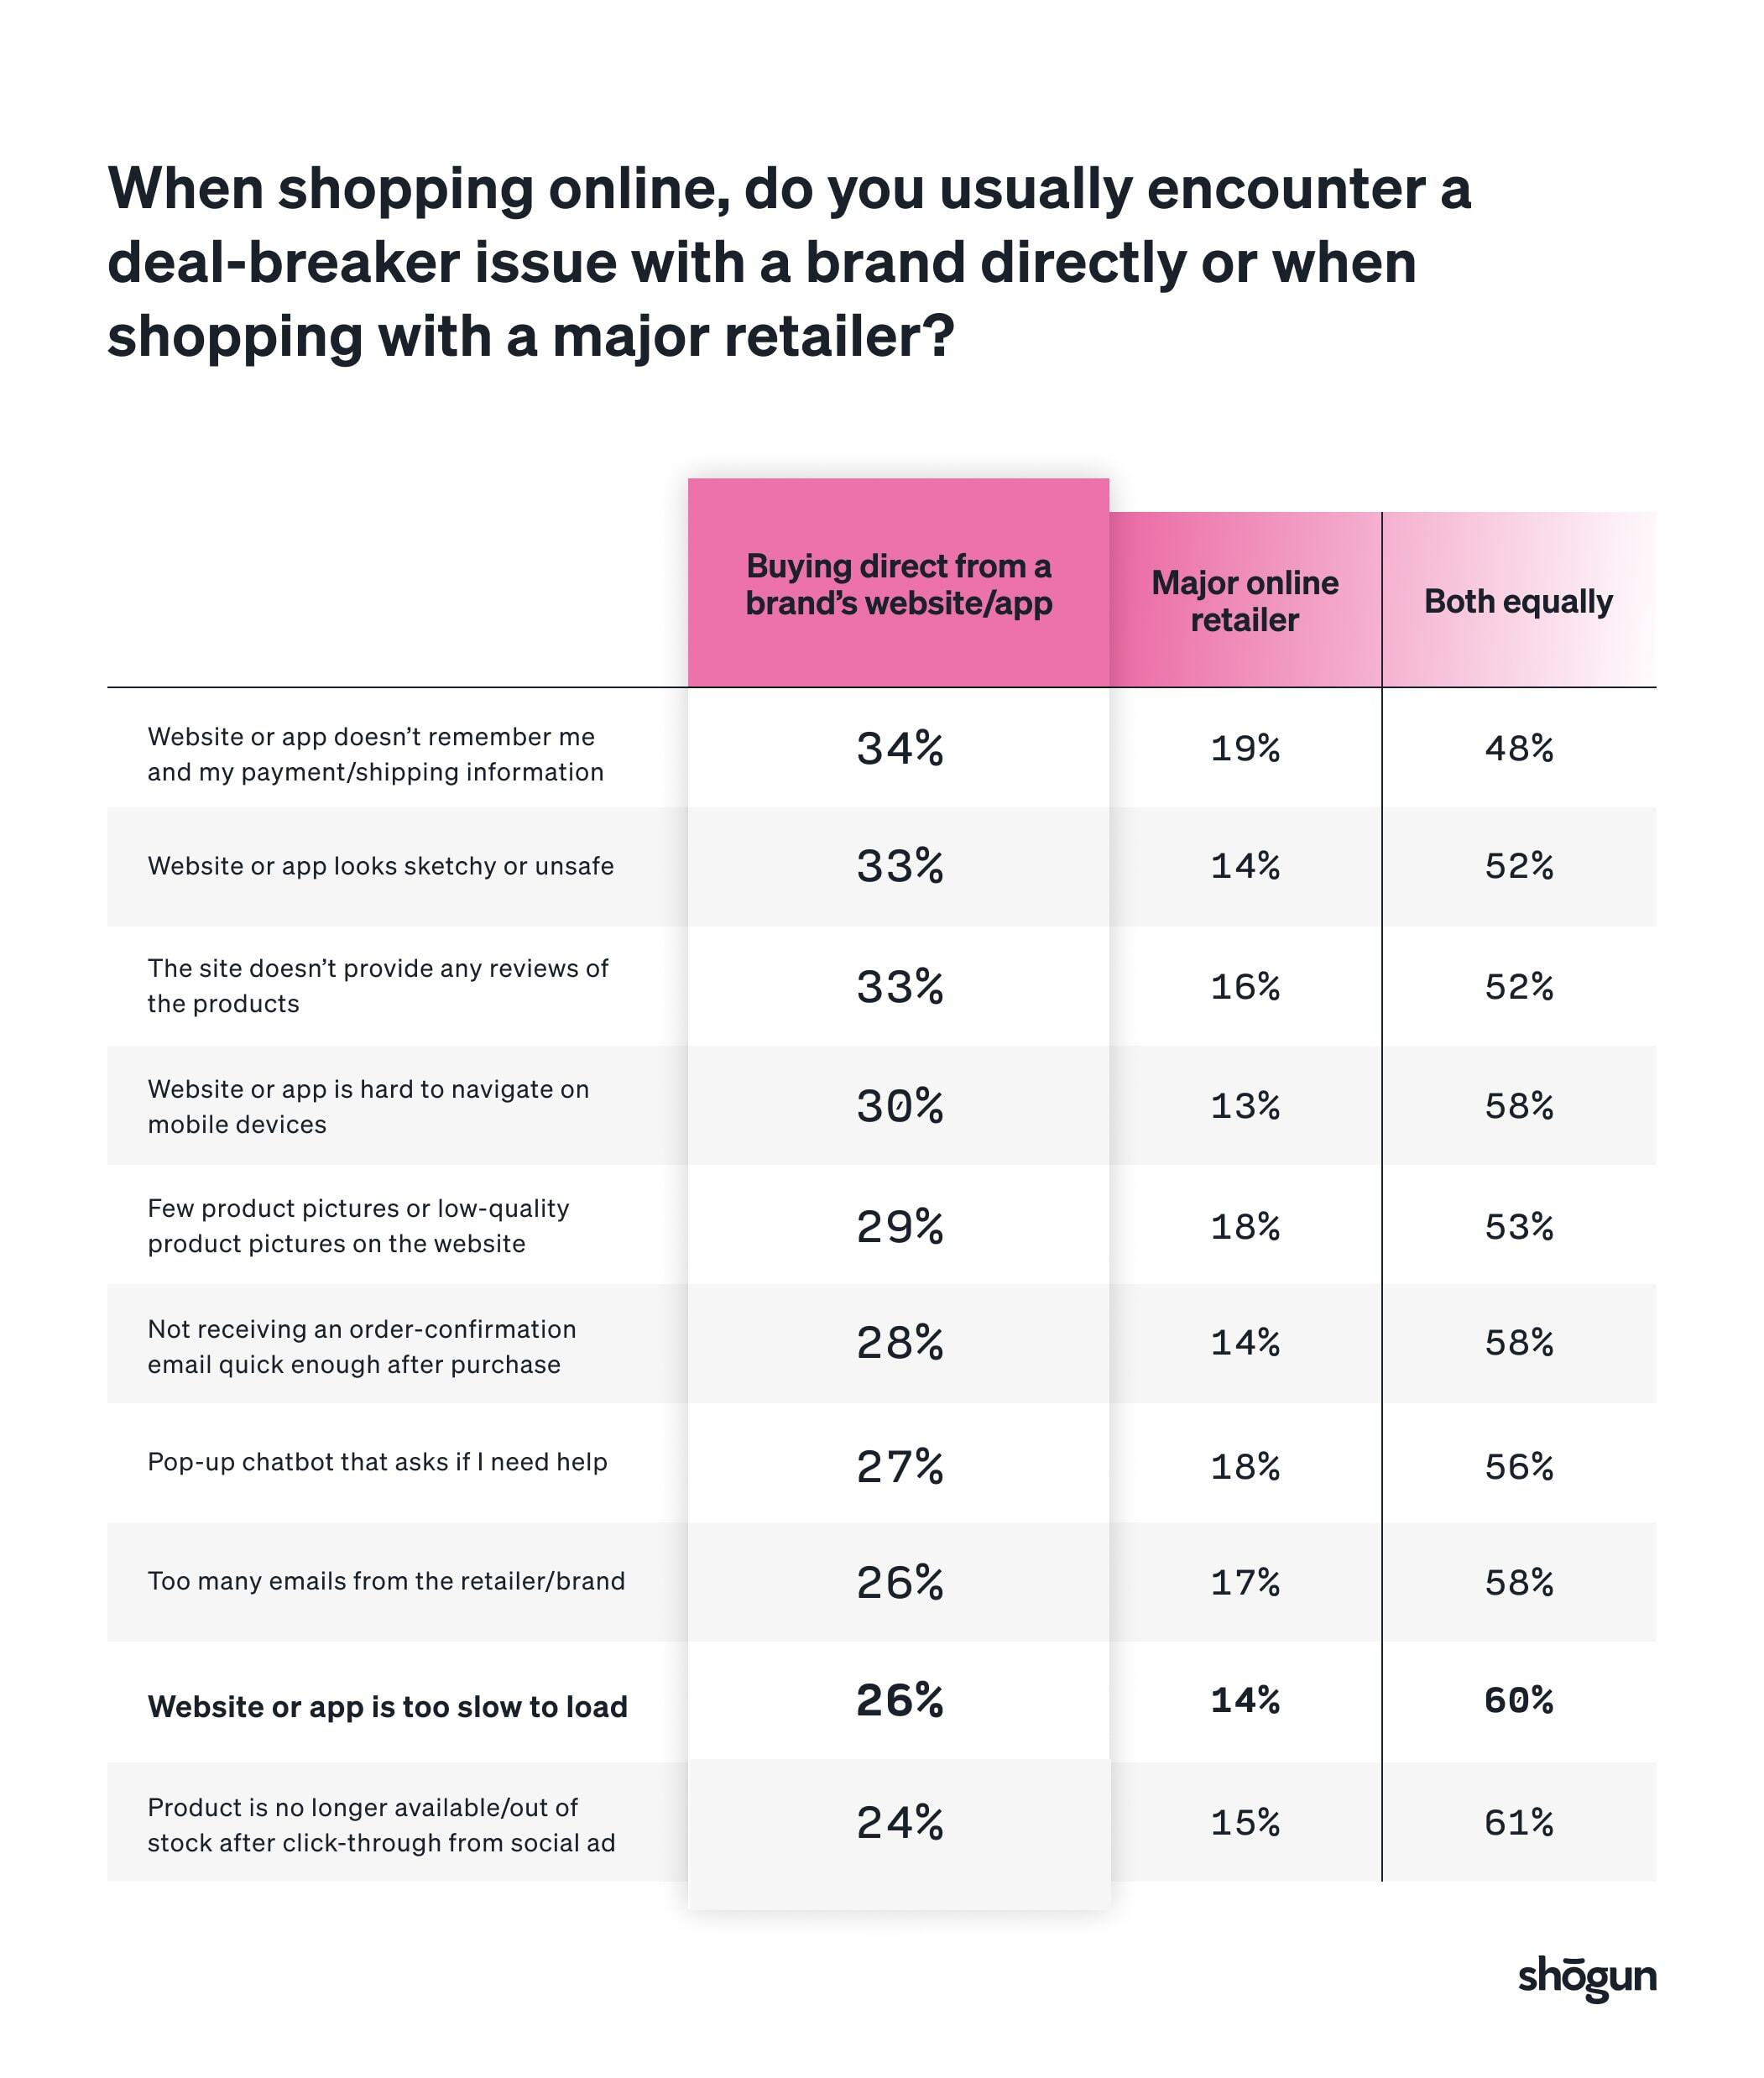 online shopper data on when consumers usually encounter a deal-break issue